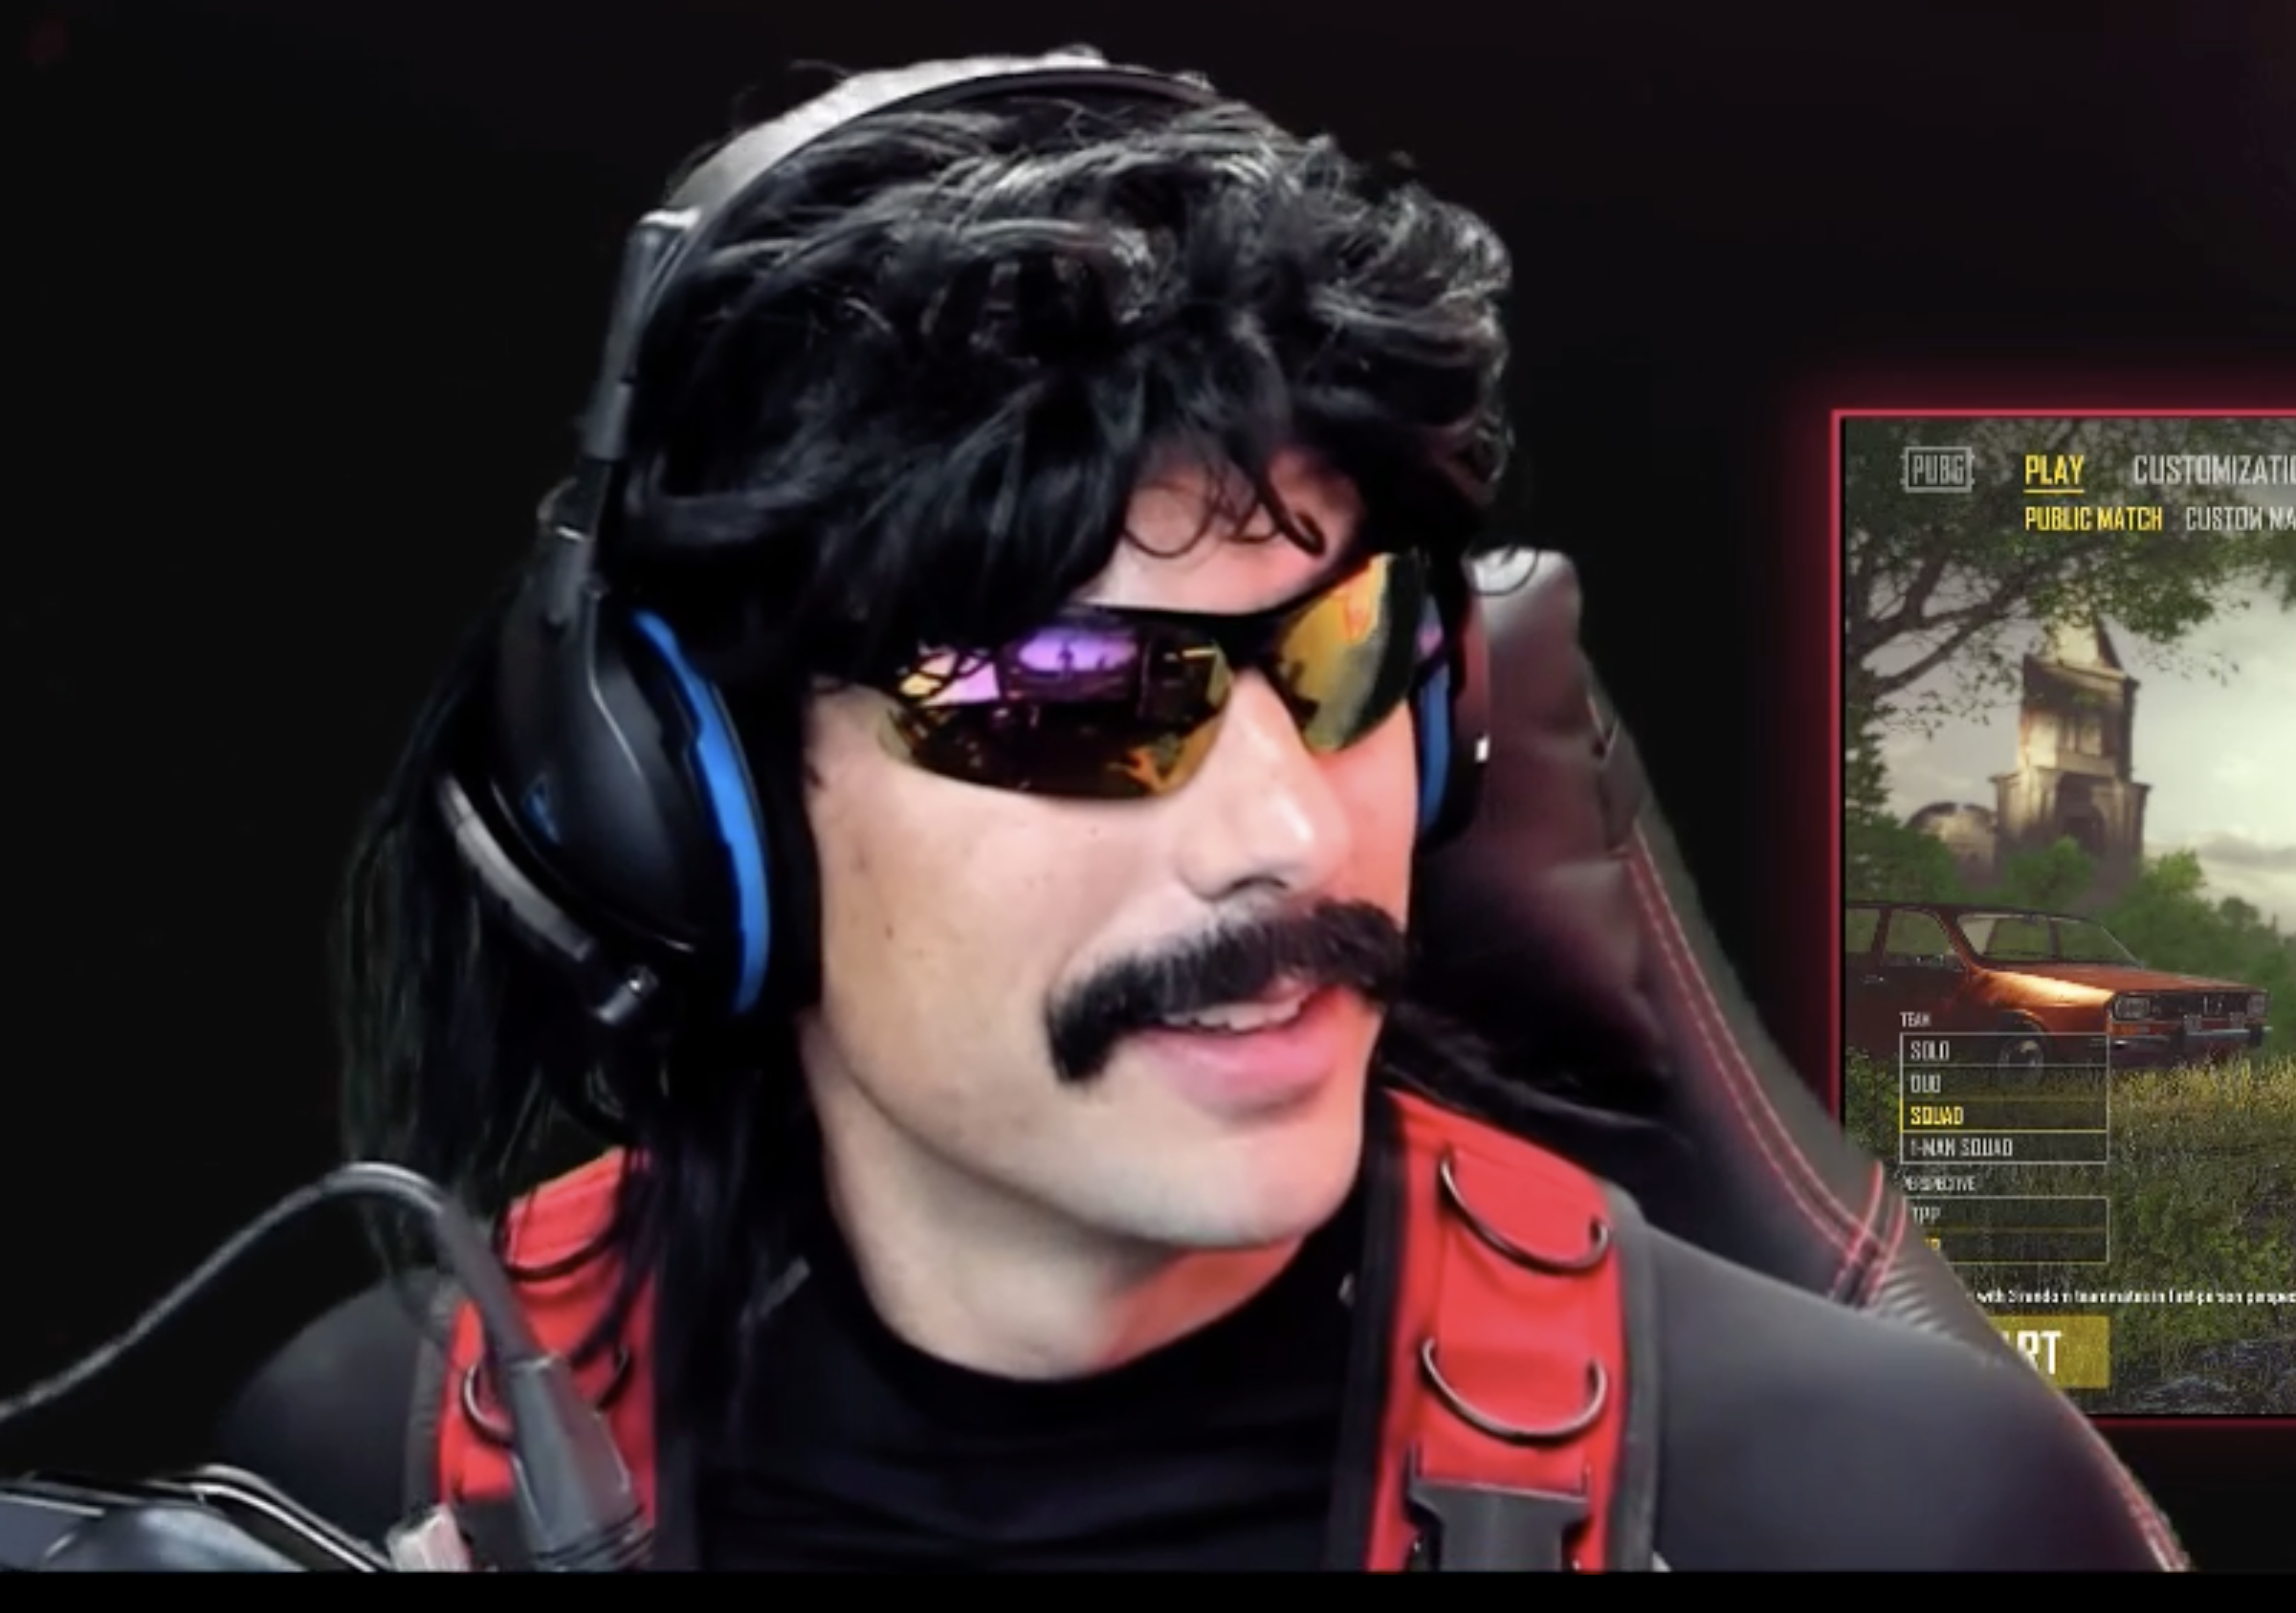 Dr Disrespect shows off benefits of aim assist with a no-look kill in Call of Duty: Warzone